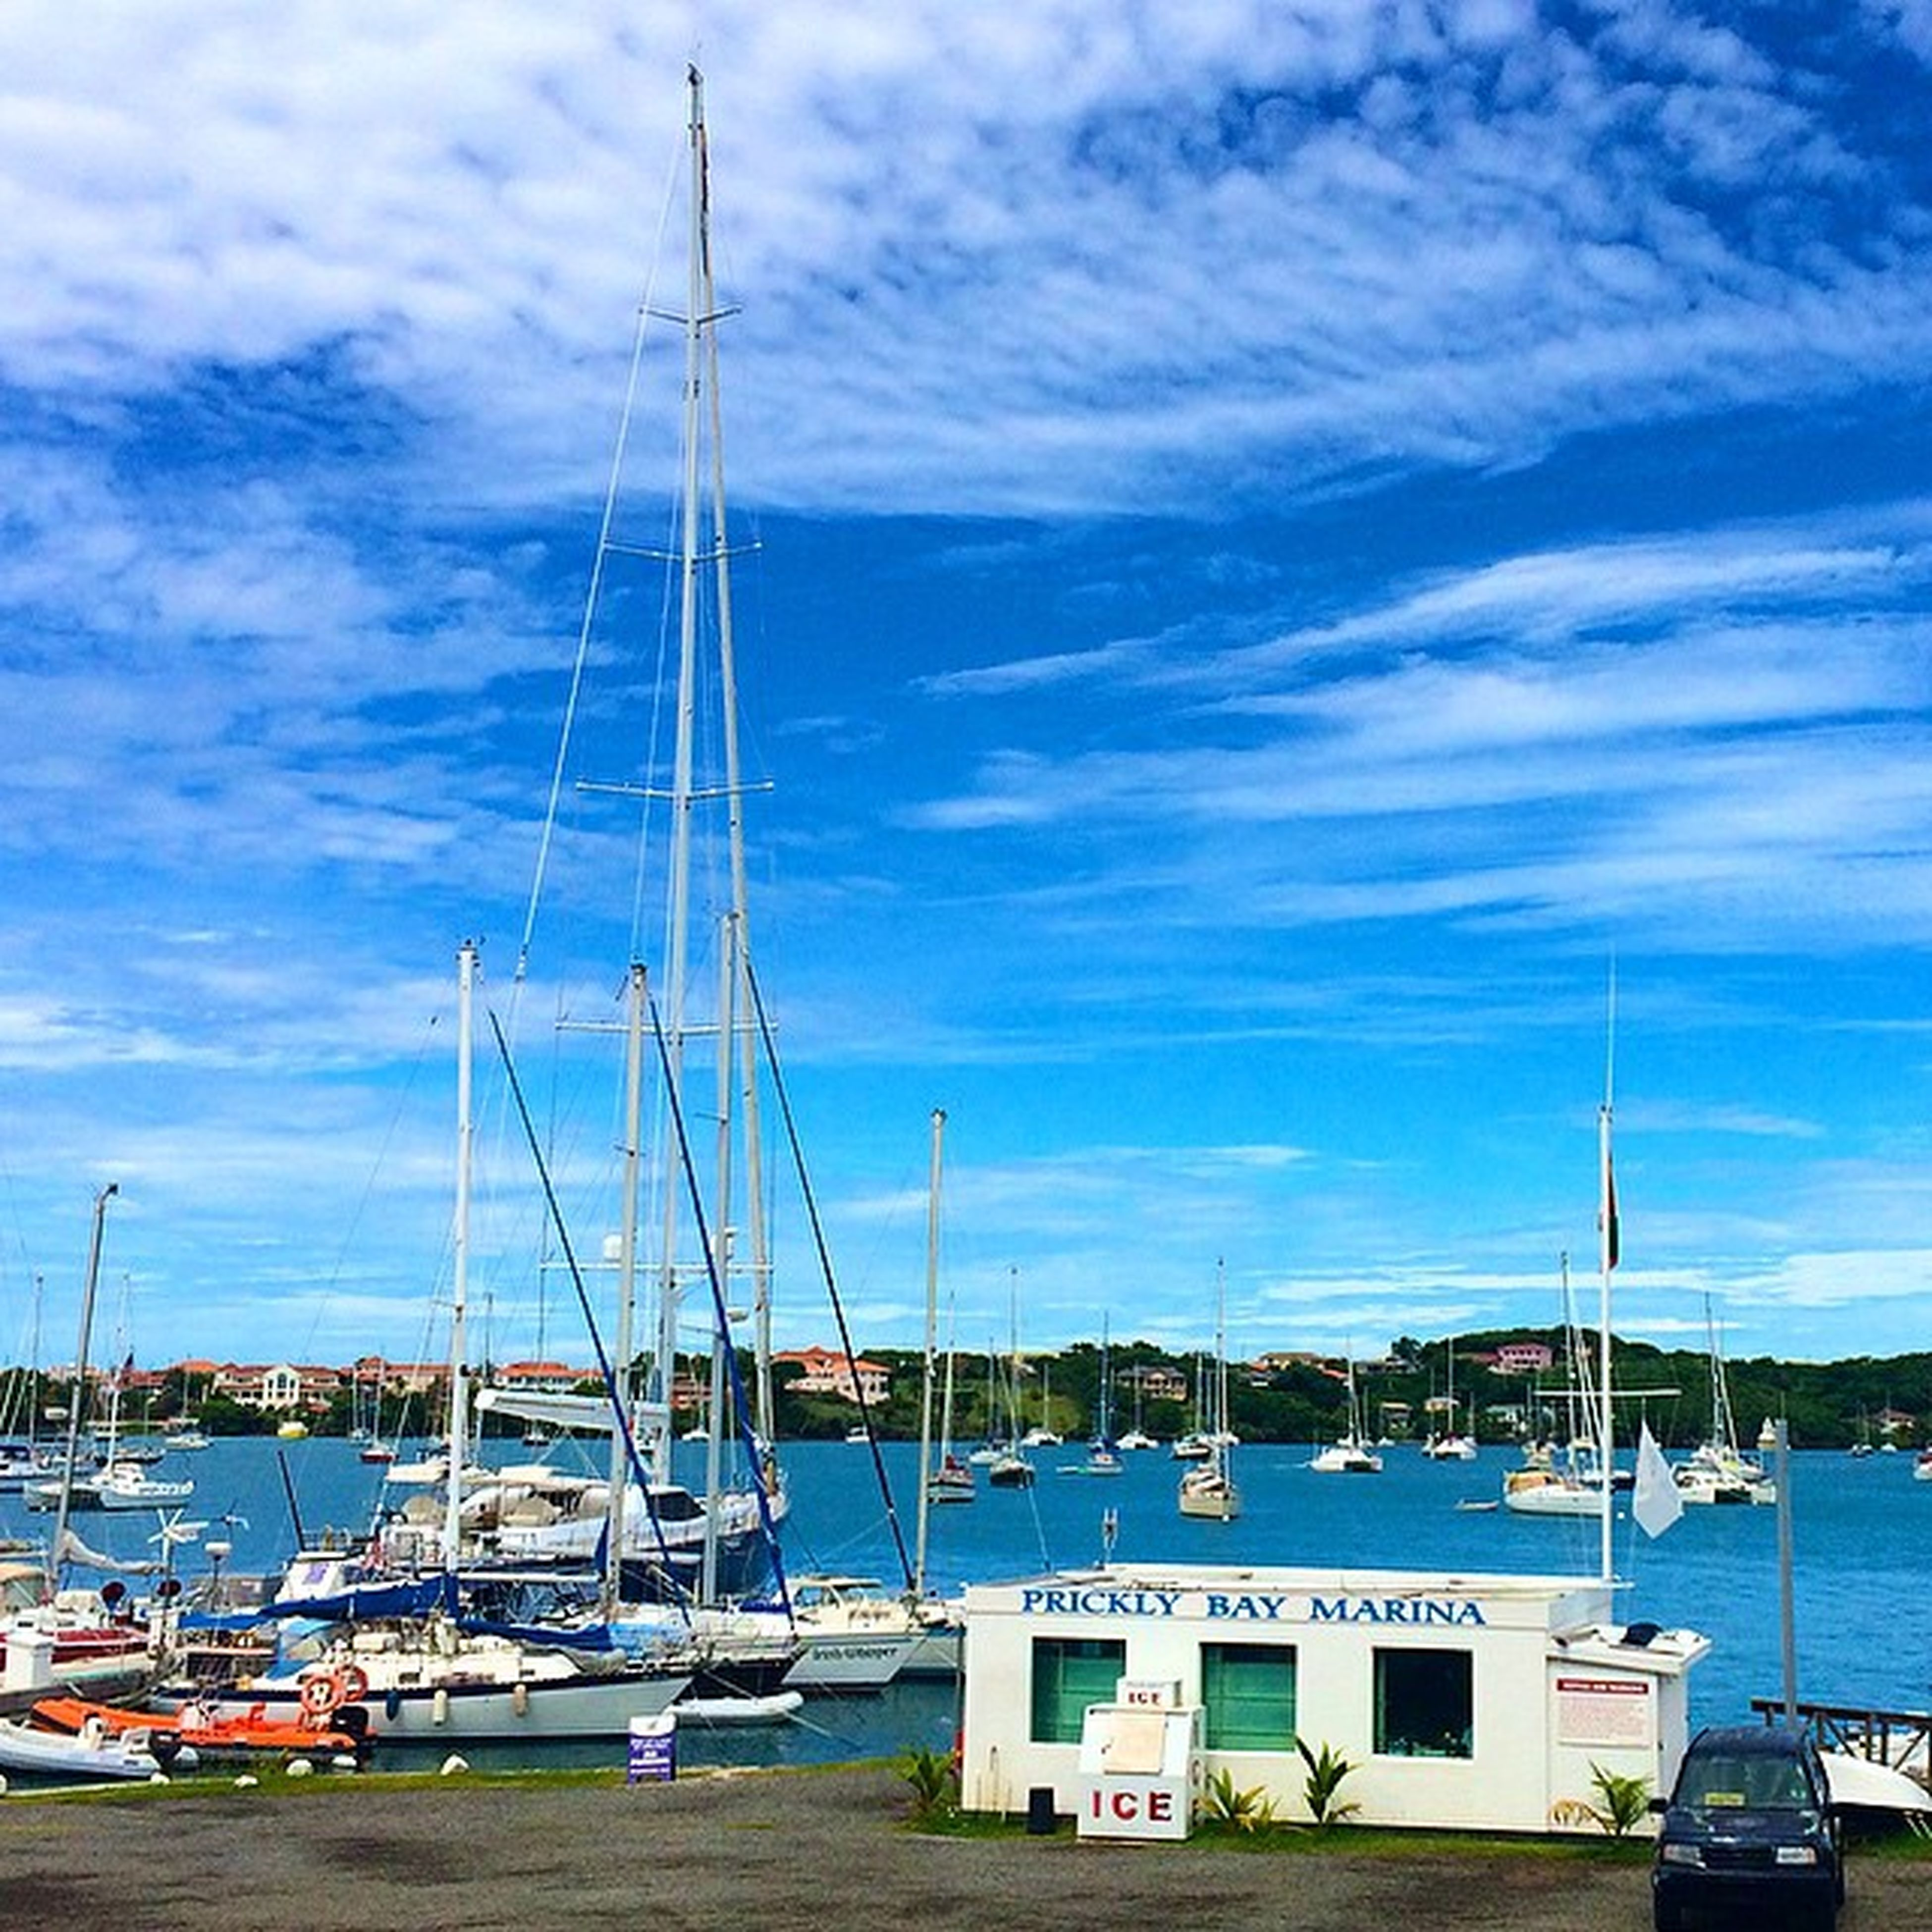 nautical vessel, transportation, moored, mode of transport, sky, mast, boat, water, harbor, cloud - sky, sailboat, sea, cloud, blue, cloudy, day, travel, nature, outdoors, no people